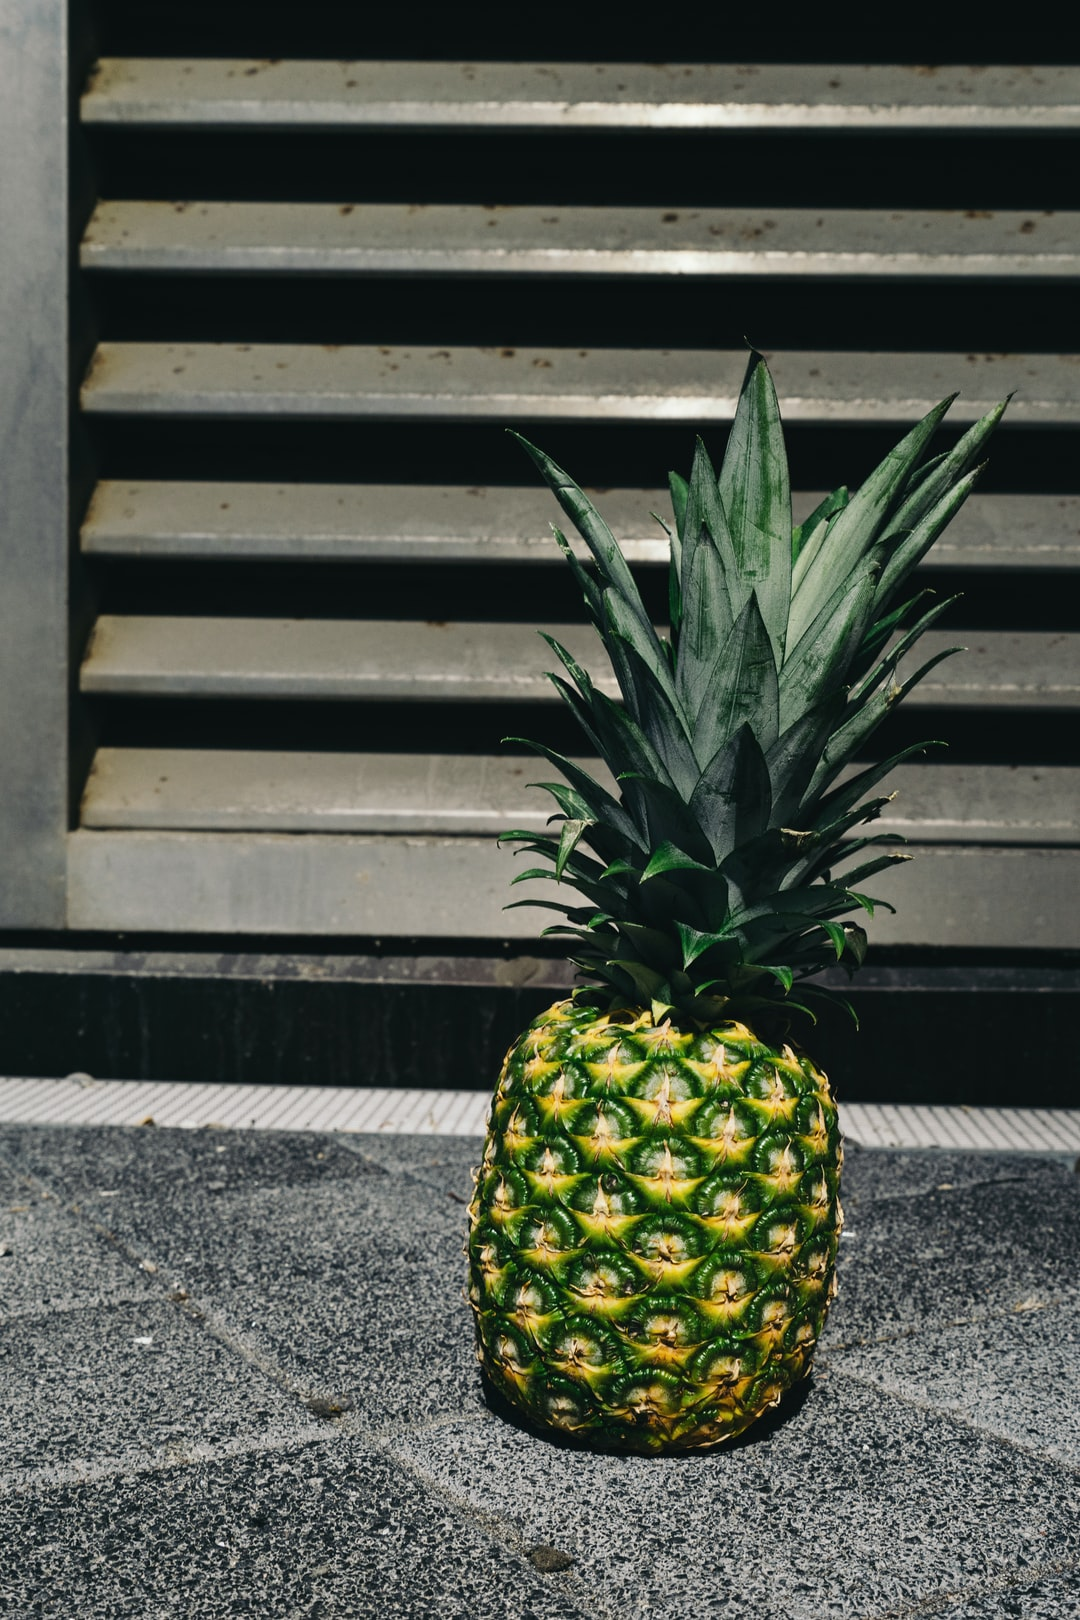 pineapple in urban scene for high-res download